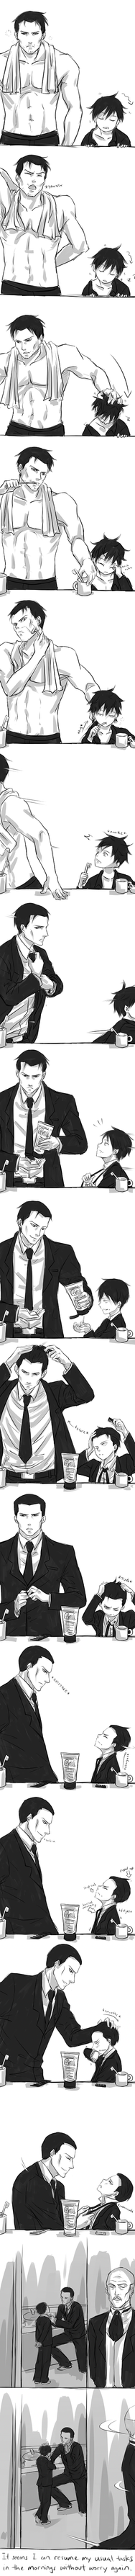 Dick Grayson and Bruce Wayne (THIS IS NOT MINE) by masuba